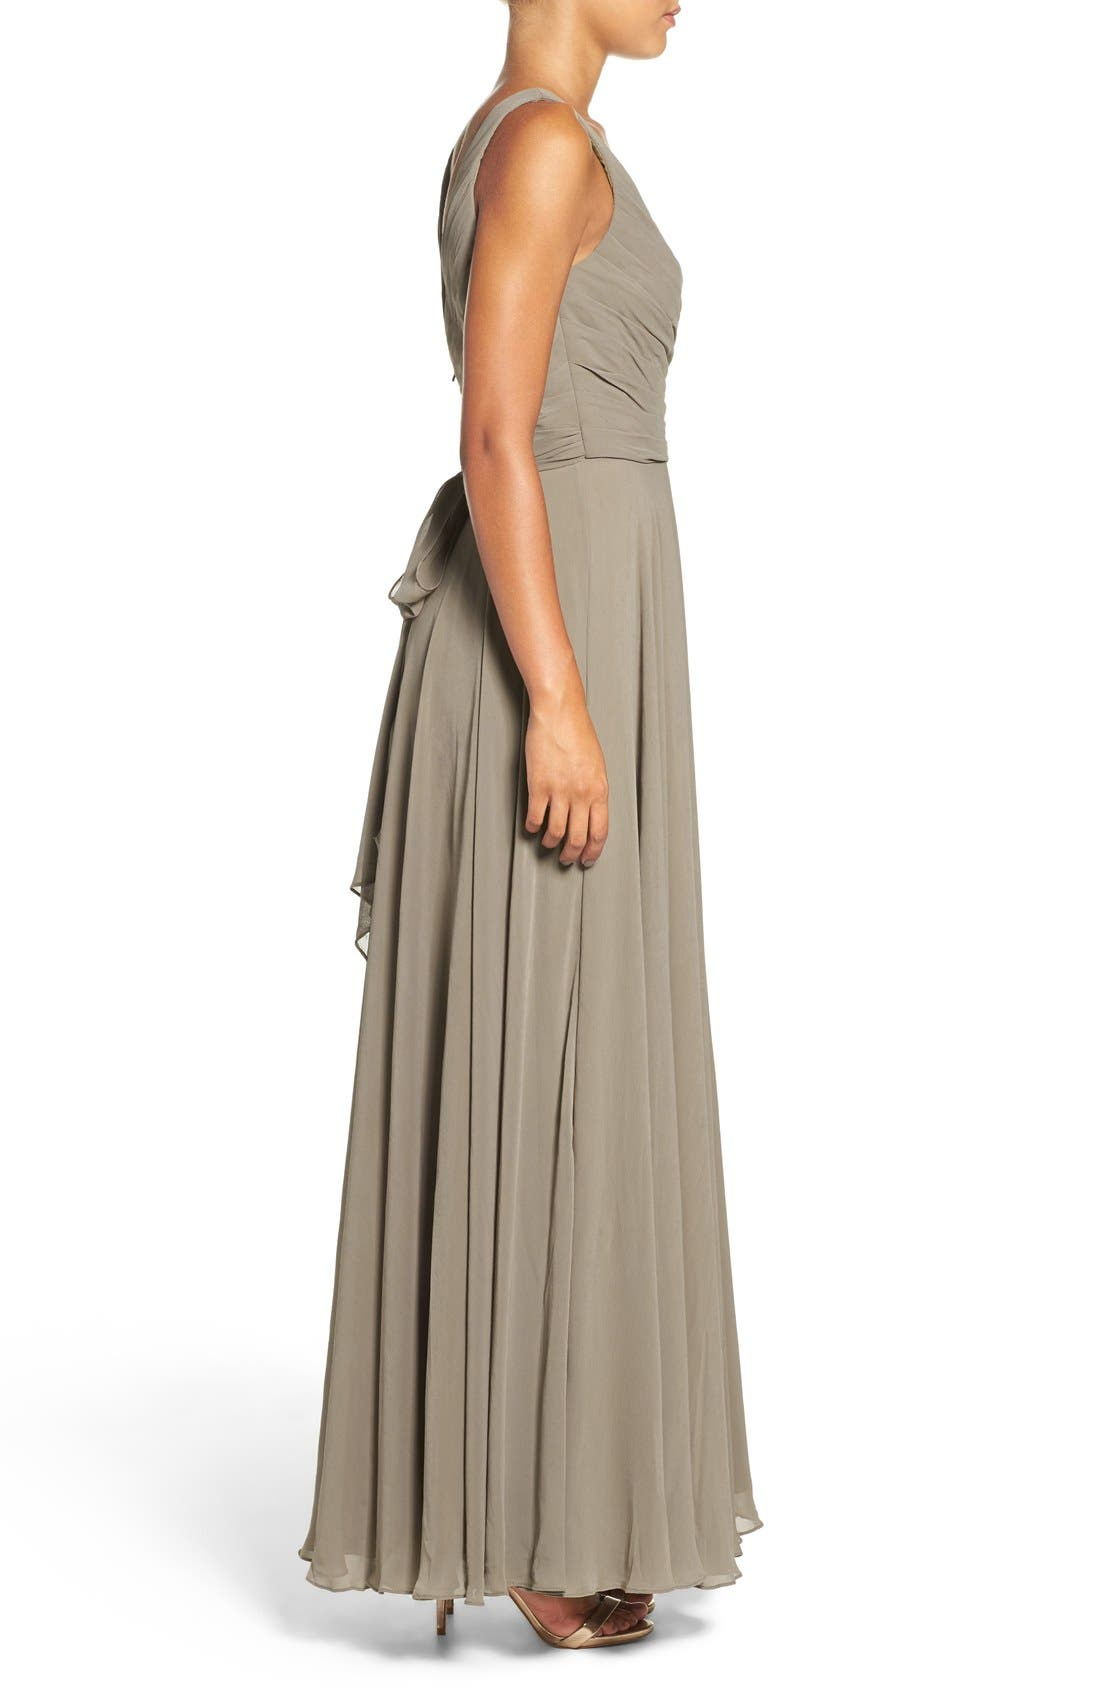 Karen V-Neck A-Line Chiffon Gown,                             Alternate thumbnail 6, color,                             020